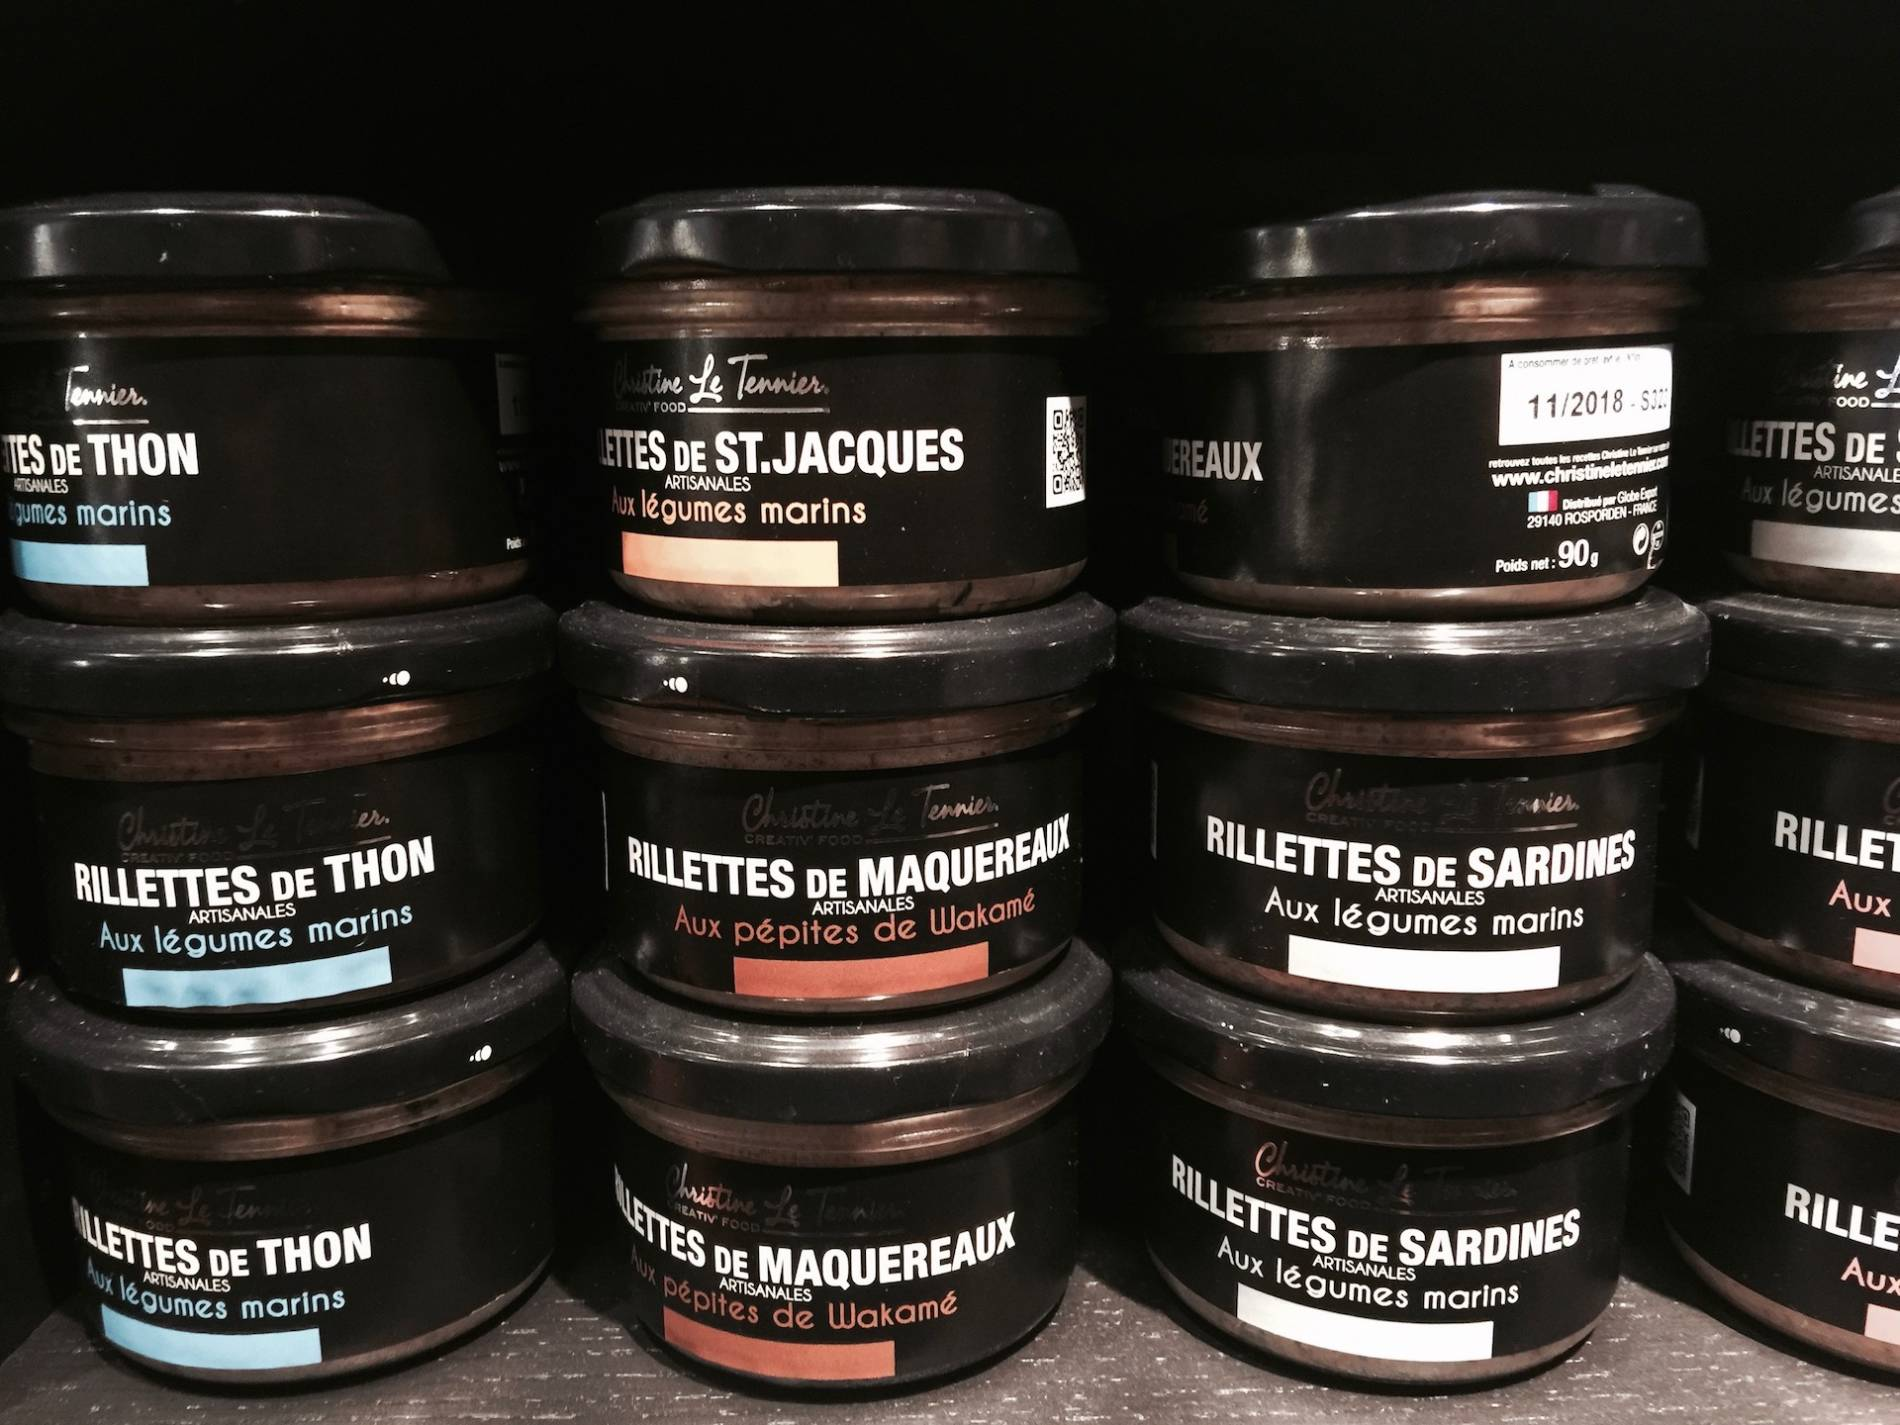 rillettes de saint jacques